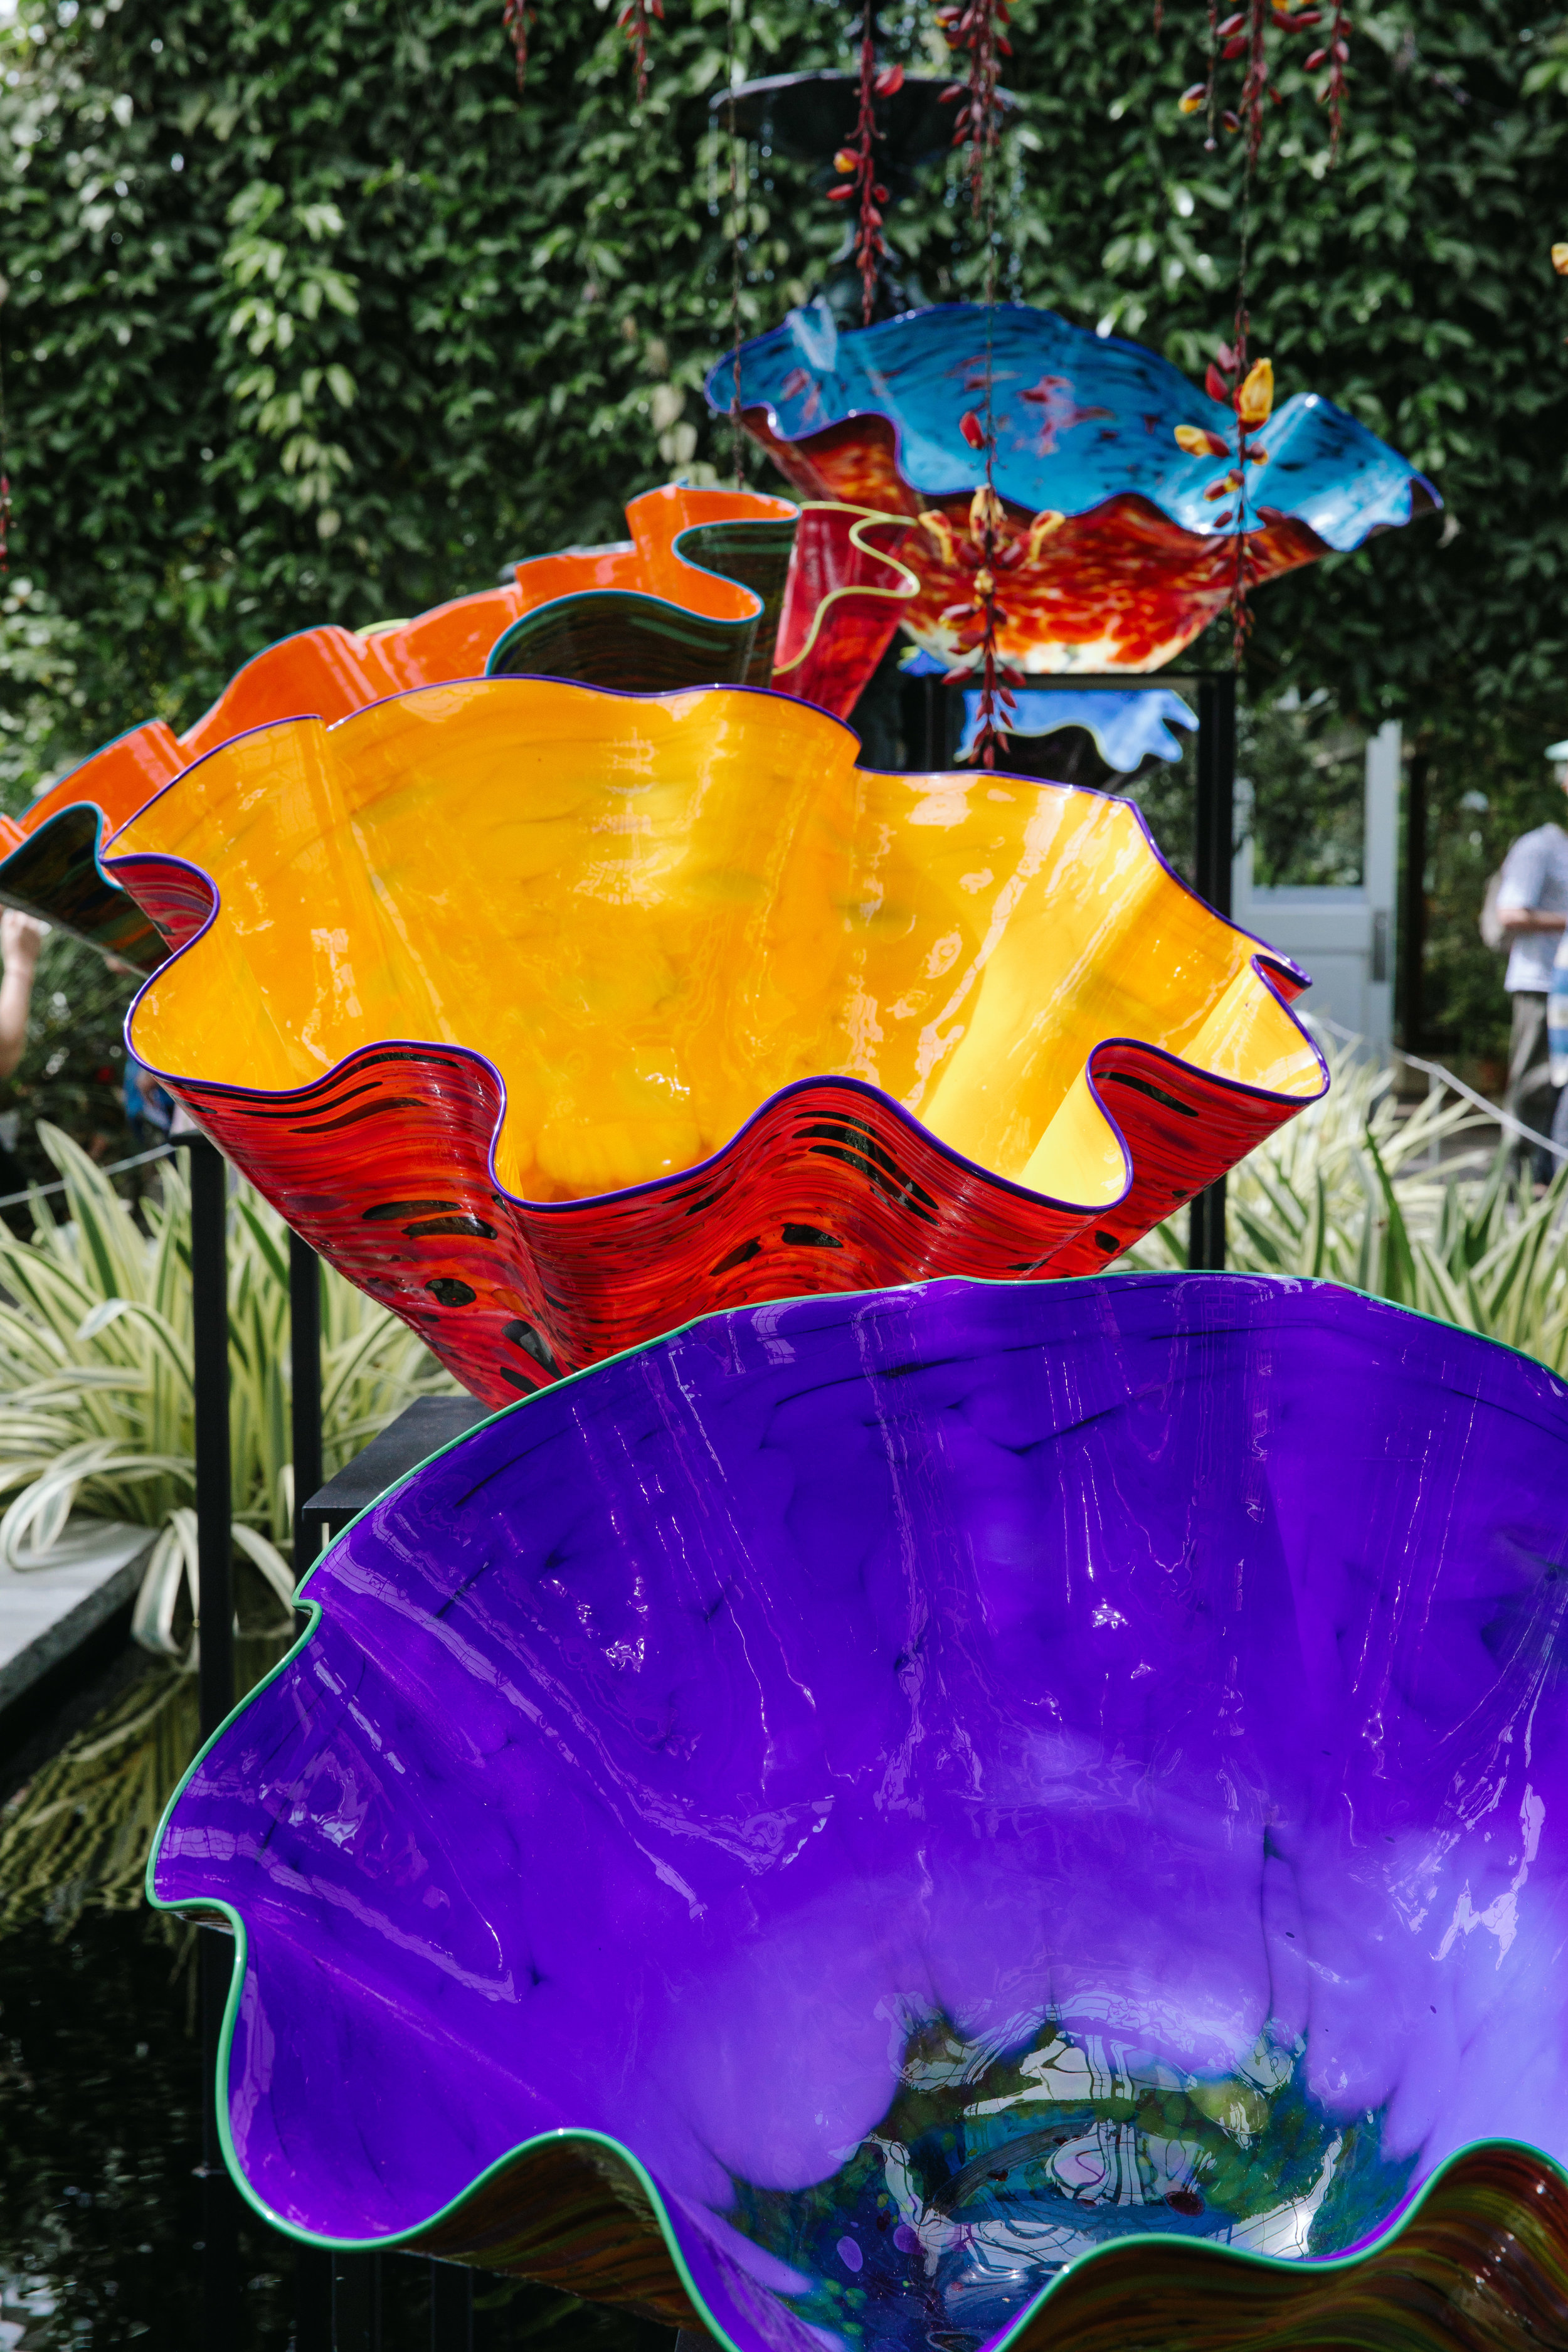 CHIHULY NY BOTANICAL GARDEN_BRIAN SAMUELS_AUGUST 2017-7160.jpg